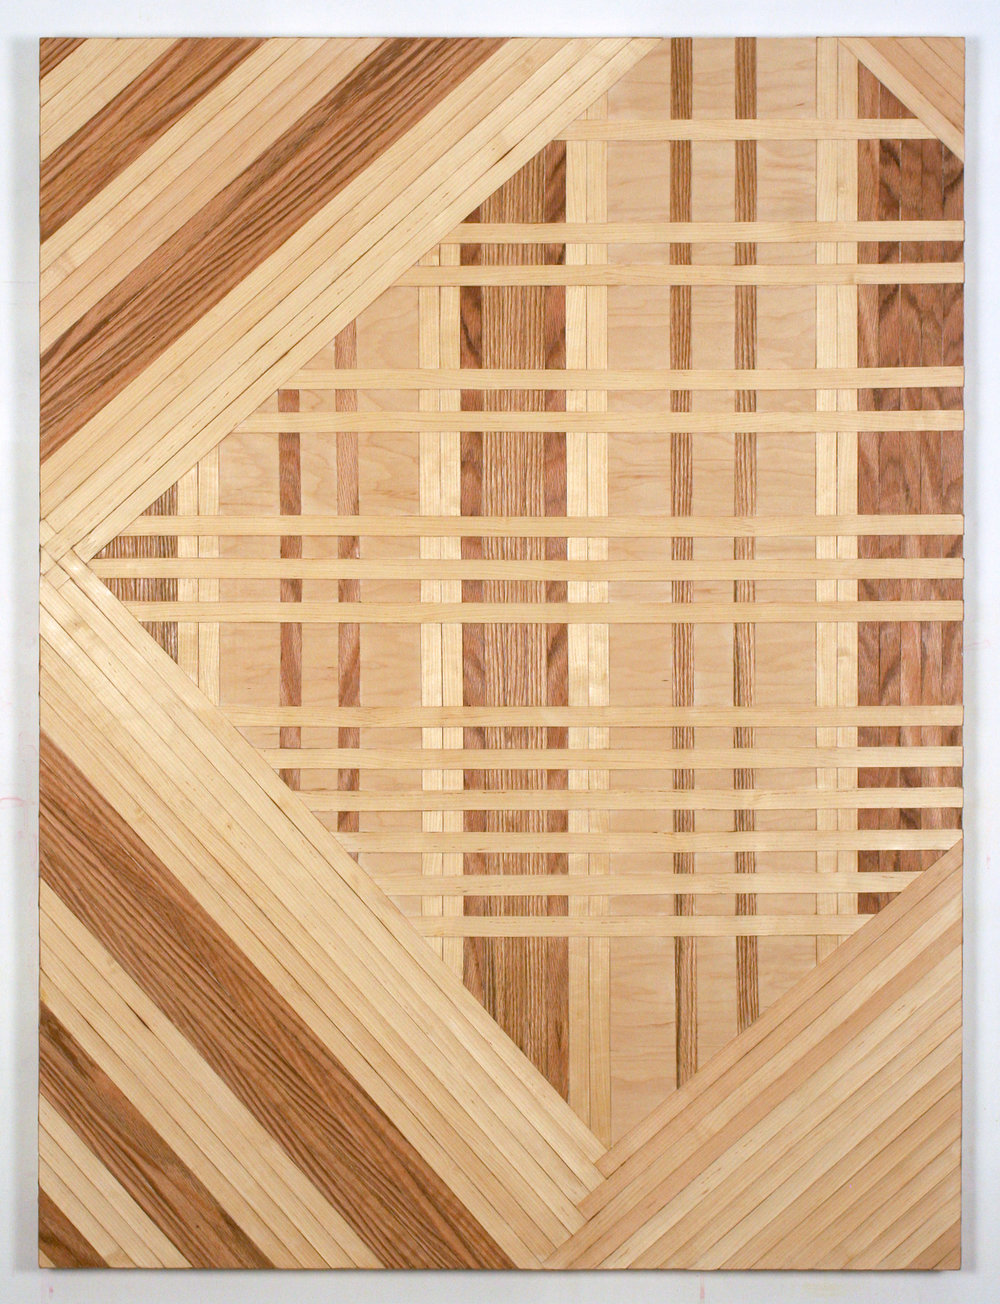 ideology  2016 red oak and birch veneer edge banding on panel  48 in x 36 in